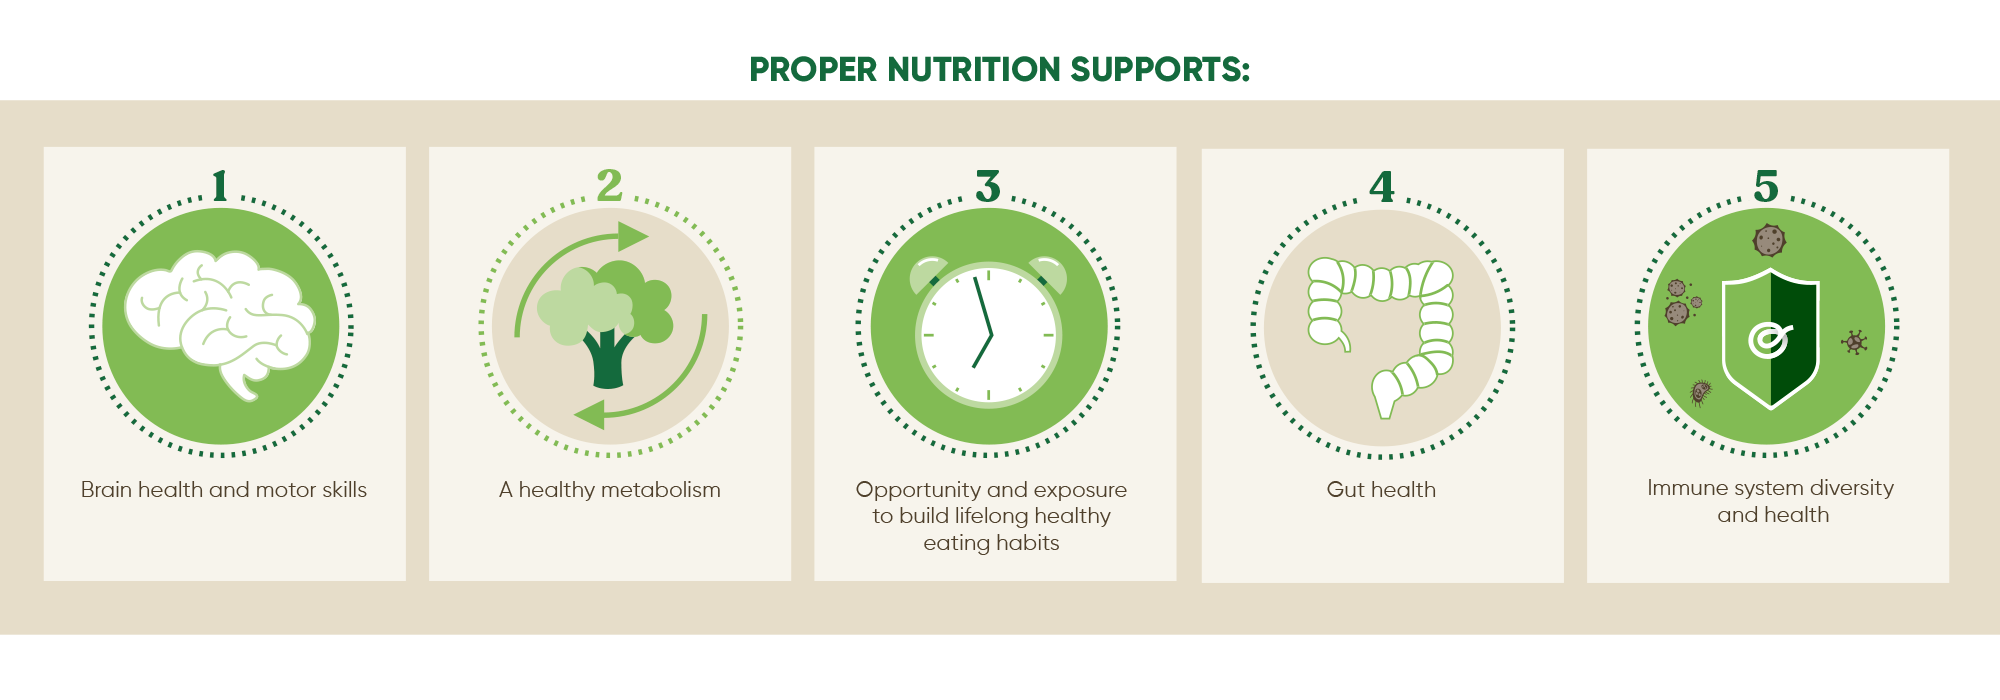 Proper nutrition supports baby's health